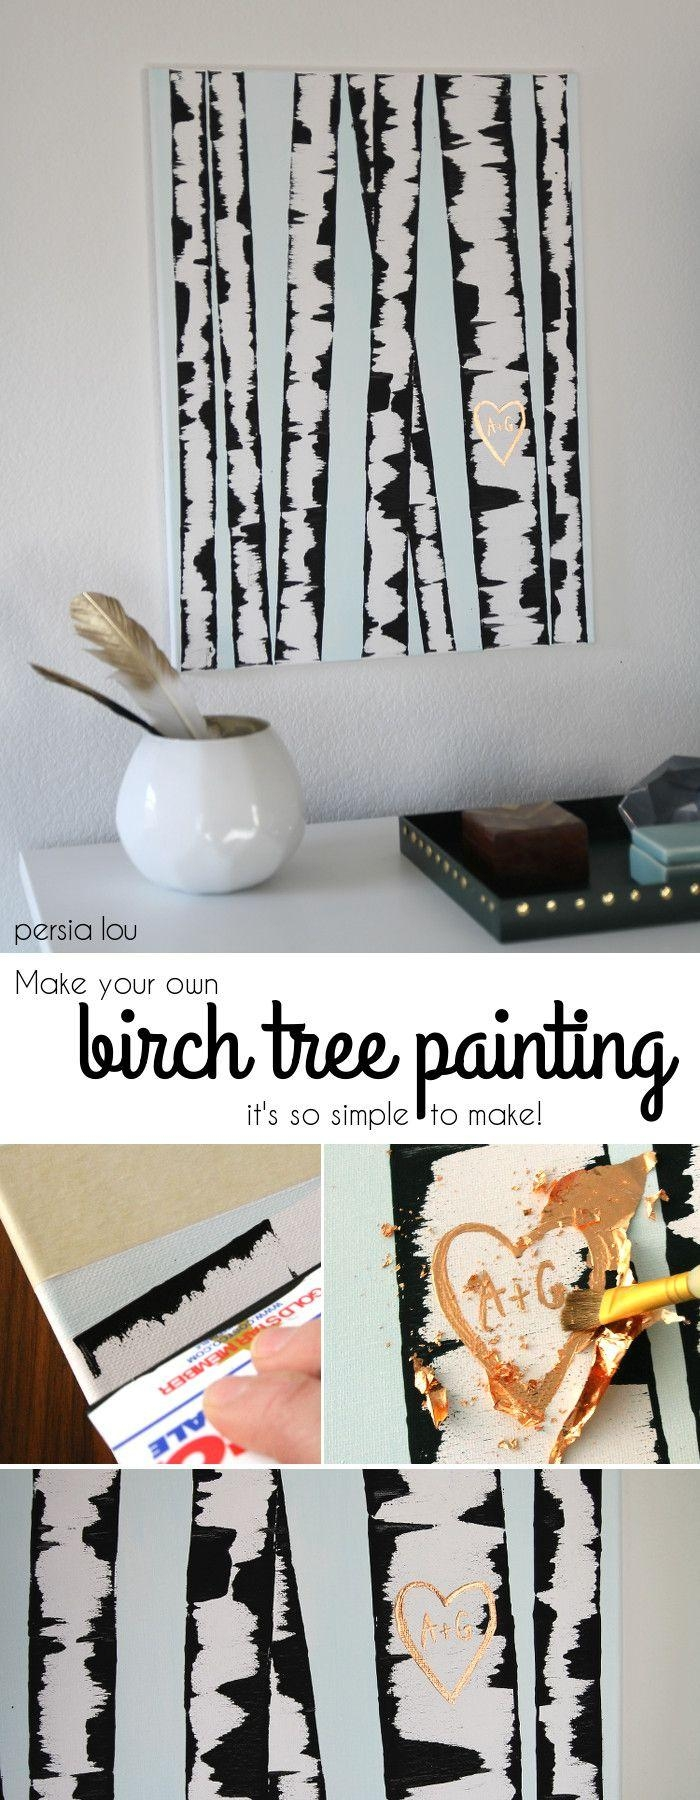 Best 10+ Diy Wall Art Ideas On Pinterest | Diy Art, Diy Wall Decor Regarding Pinterest Wall Art Decor (Image 3 of 20)